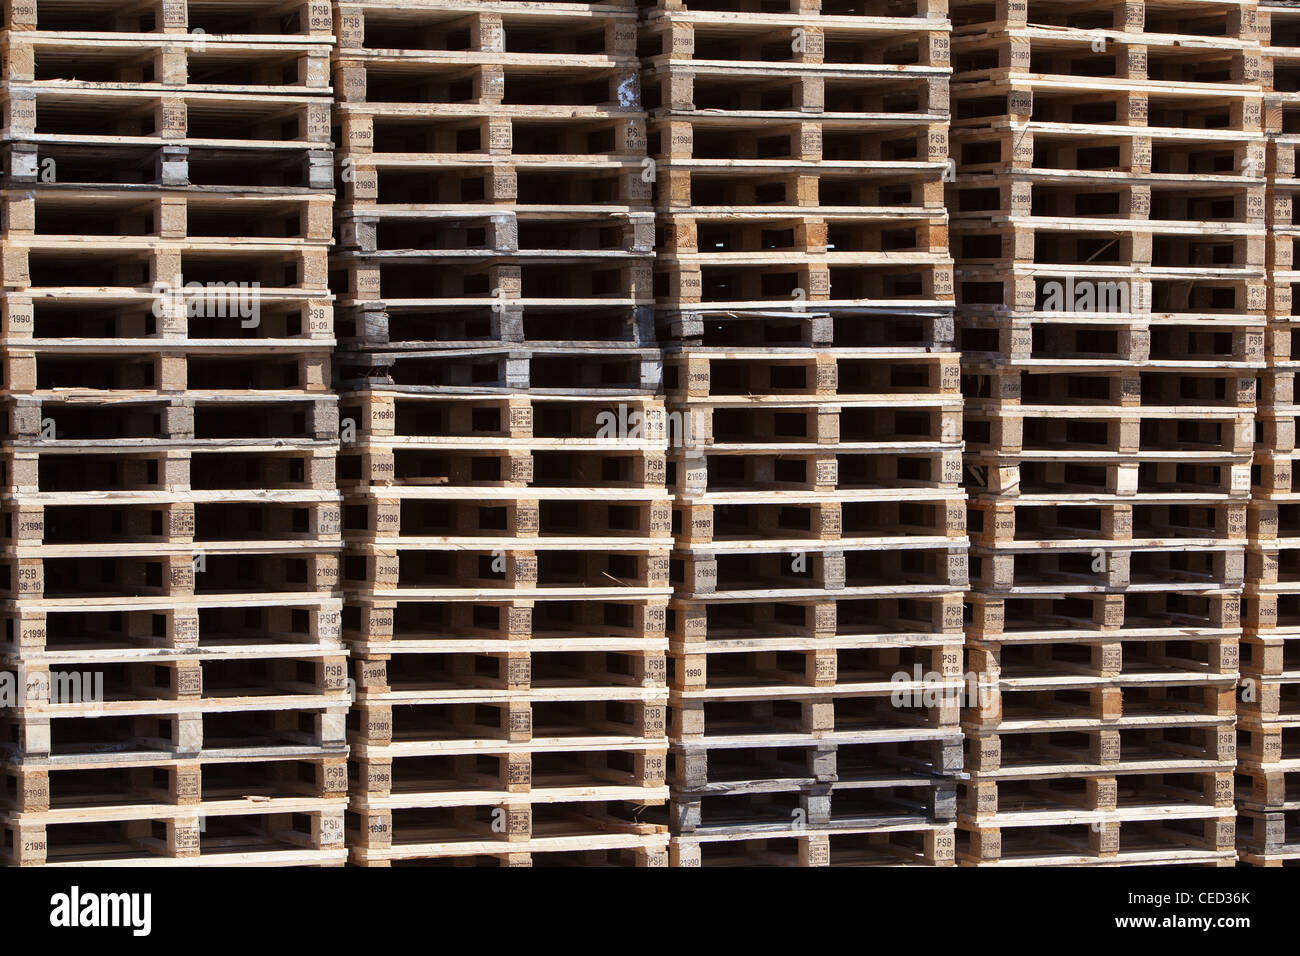 New wooden pallets stacked on harbour quayside Montrose Scotland UK - Stock Image